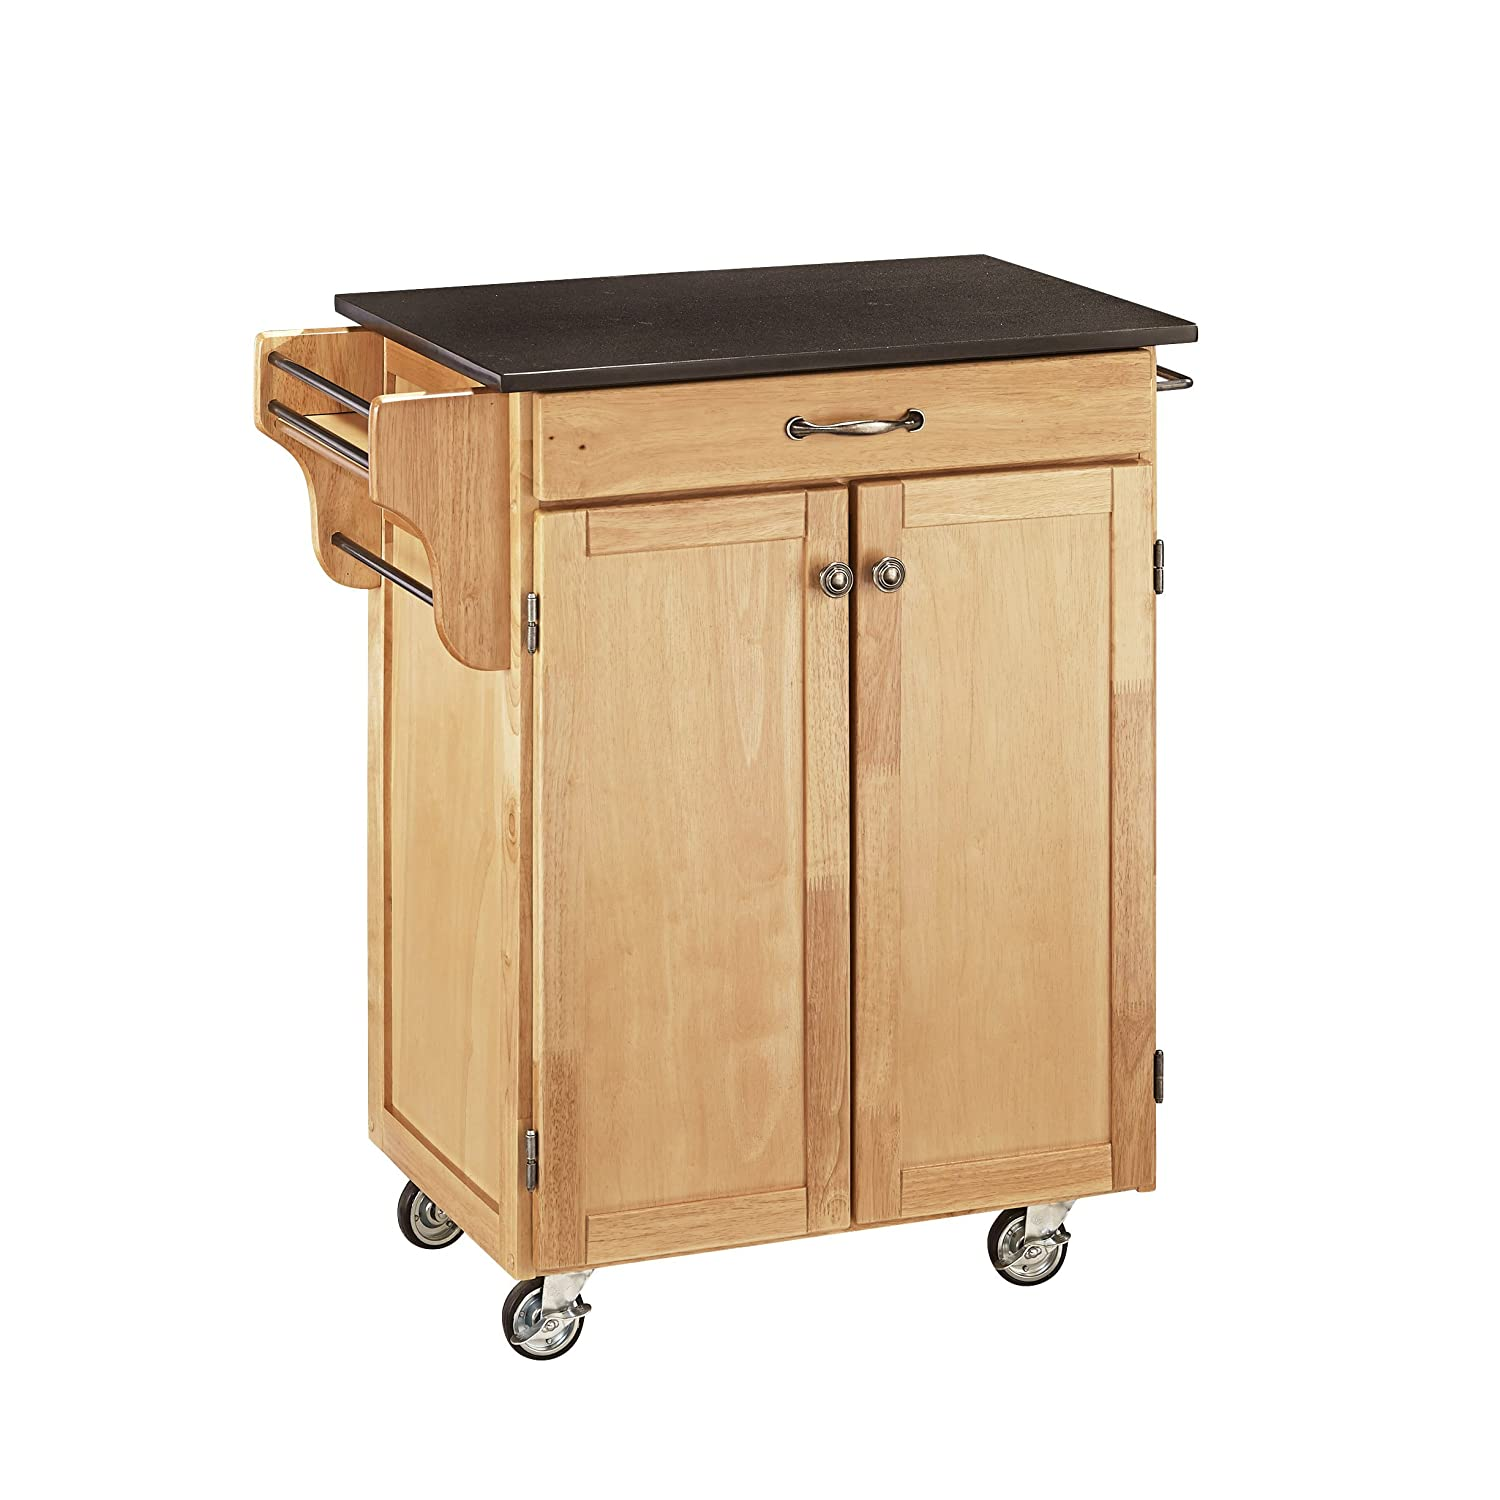 Create-a-cart Natural Kitchen Cart with Granite Top by Home Styles